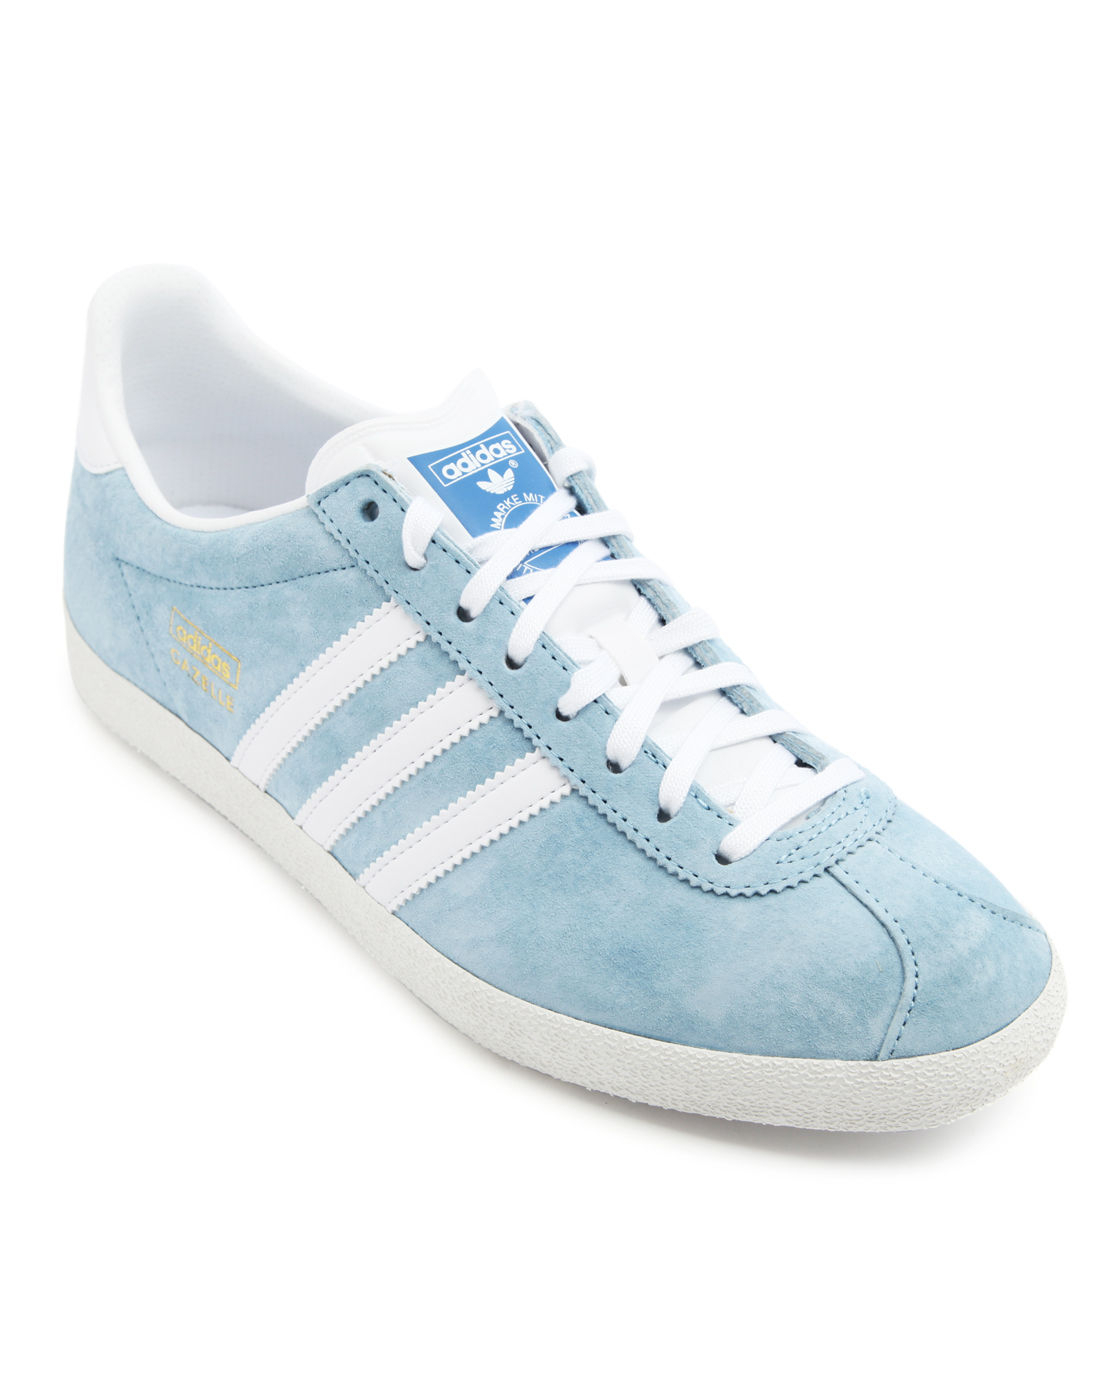 adidas gazelle skyblue suede sneakers in blue for men lyst. Black Bedroom Furniture Sets. Home Design Ideas